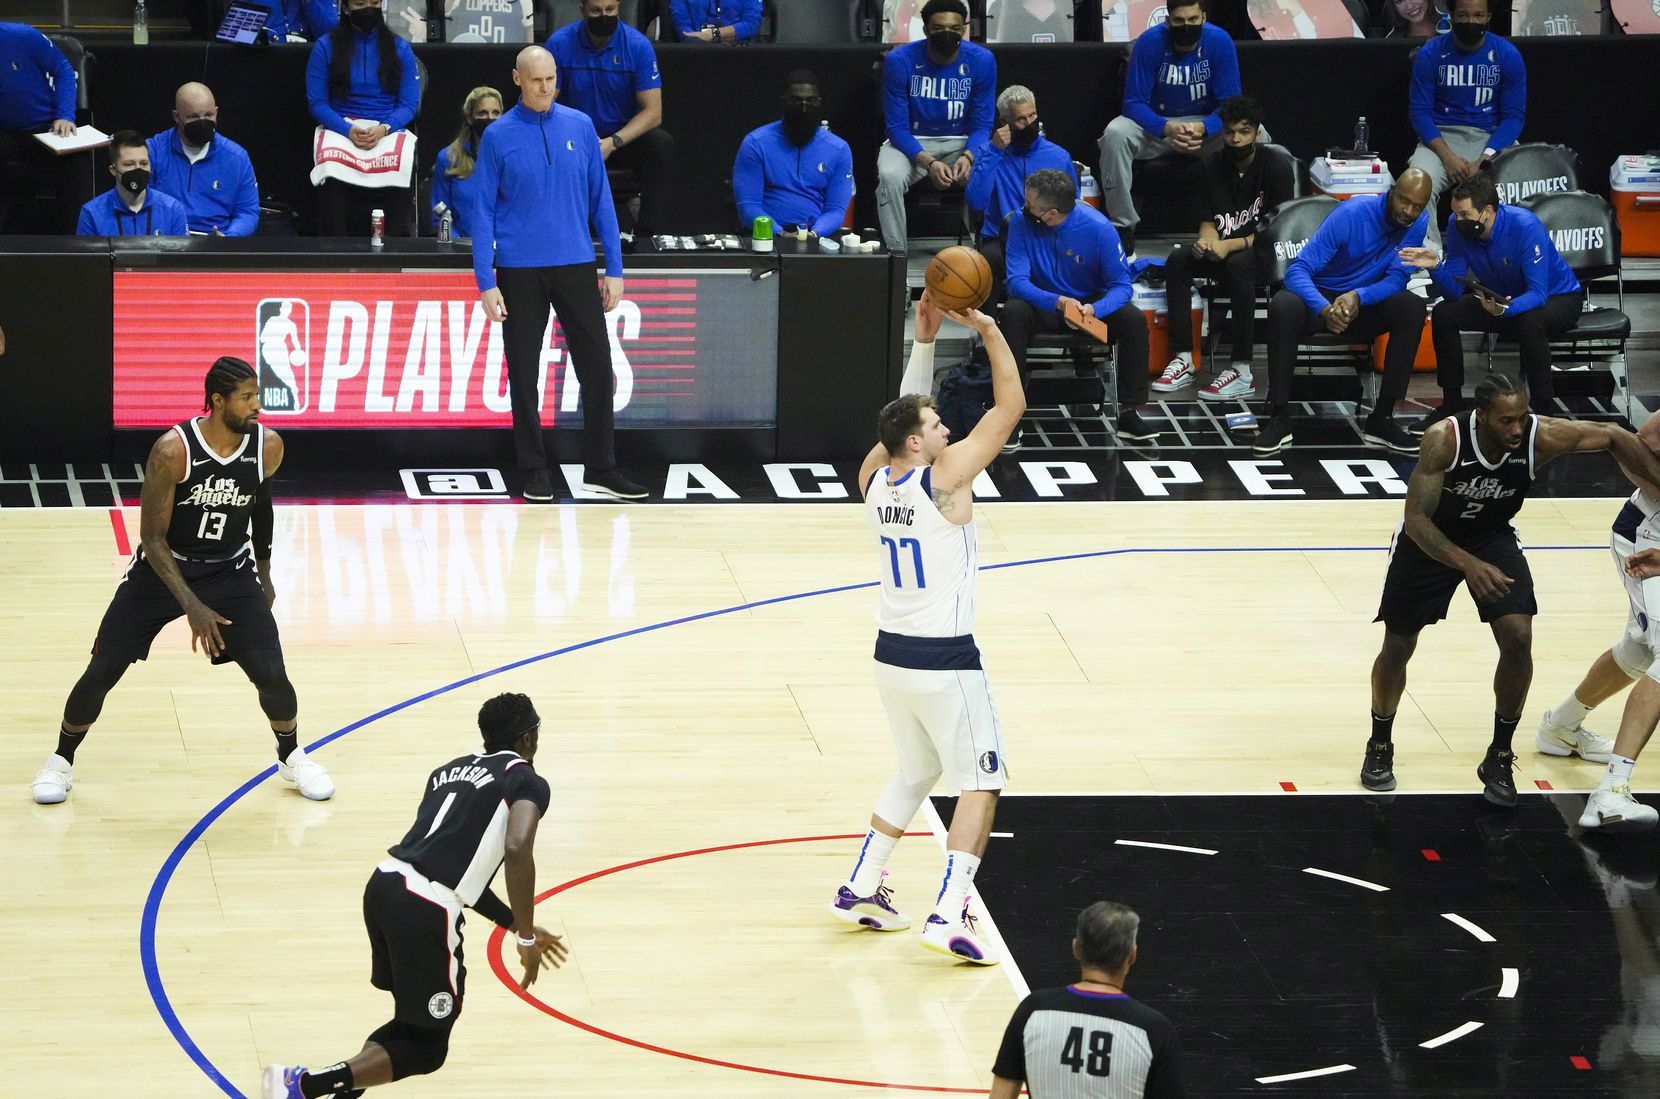 Dallas Mavericks guard Luka Doncic (77) shoots a free throw during the first quarter of Game 7 of an NBA playoff series against the LA Clippers at the Staples Center onSunday, June 6, 2021, in Los Angeles.